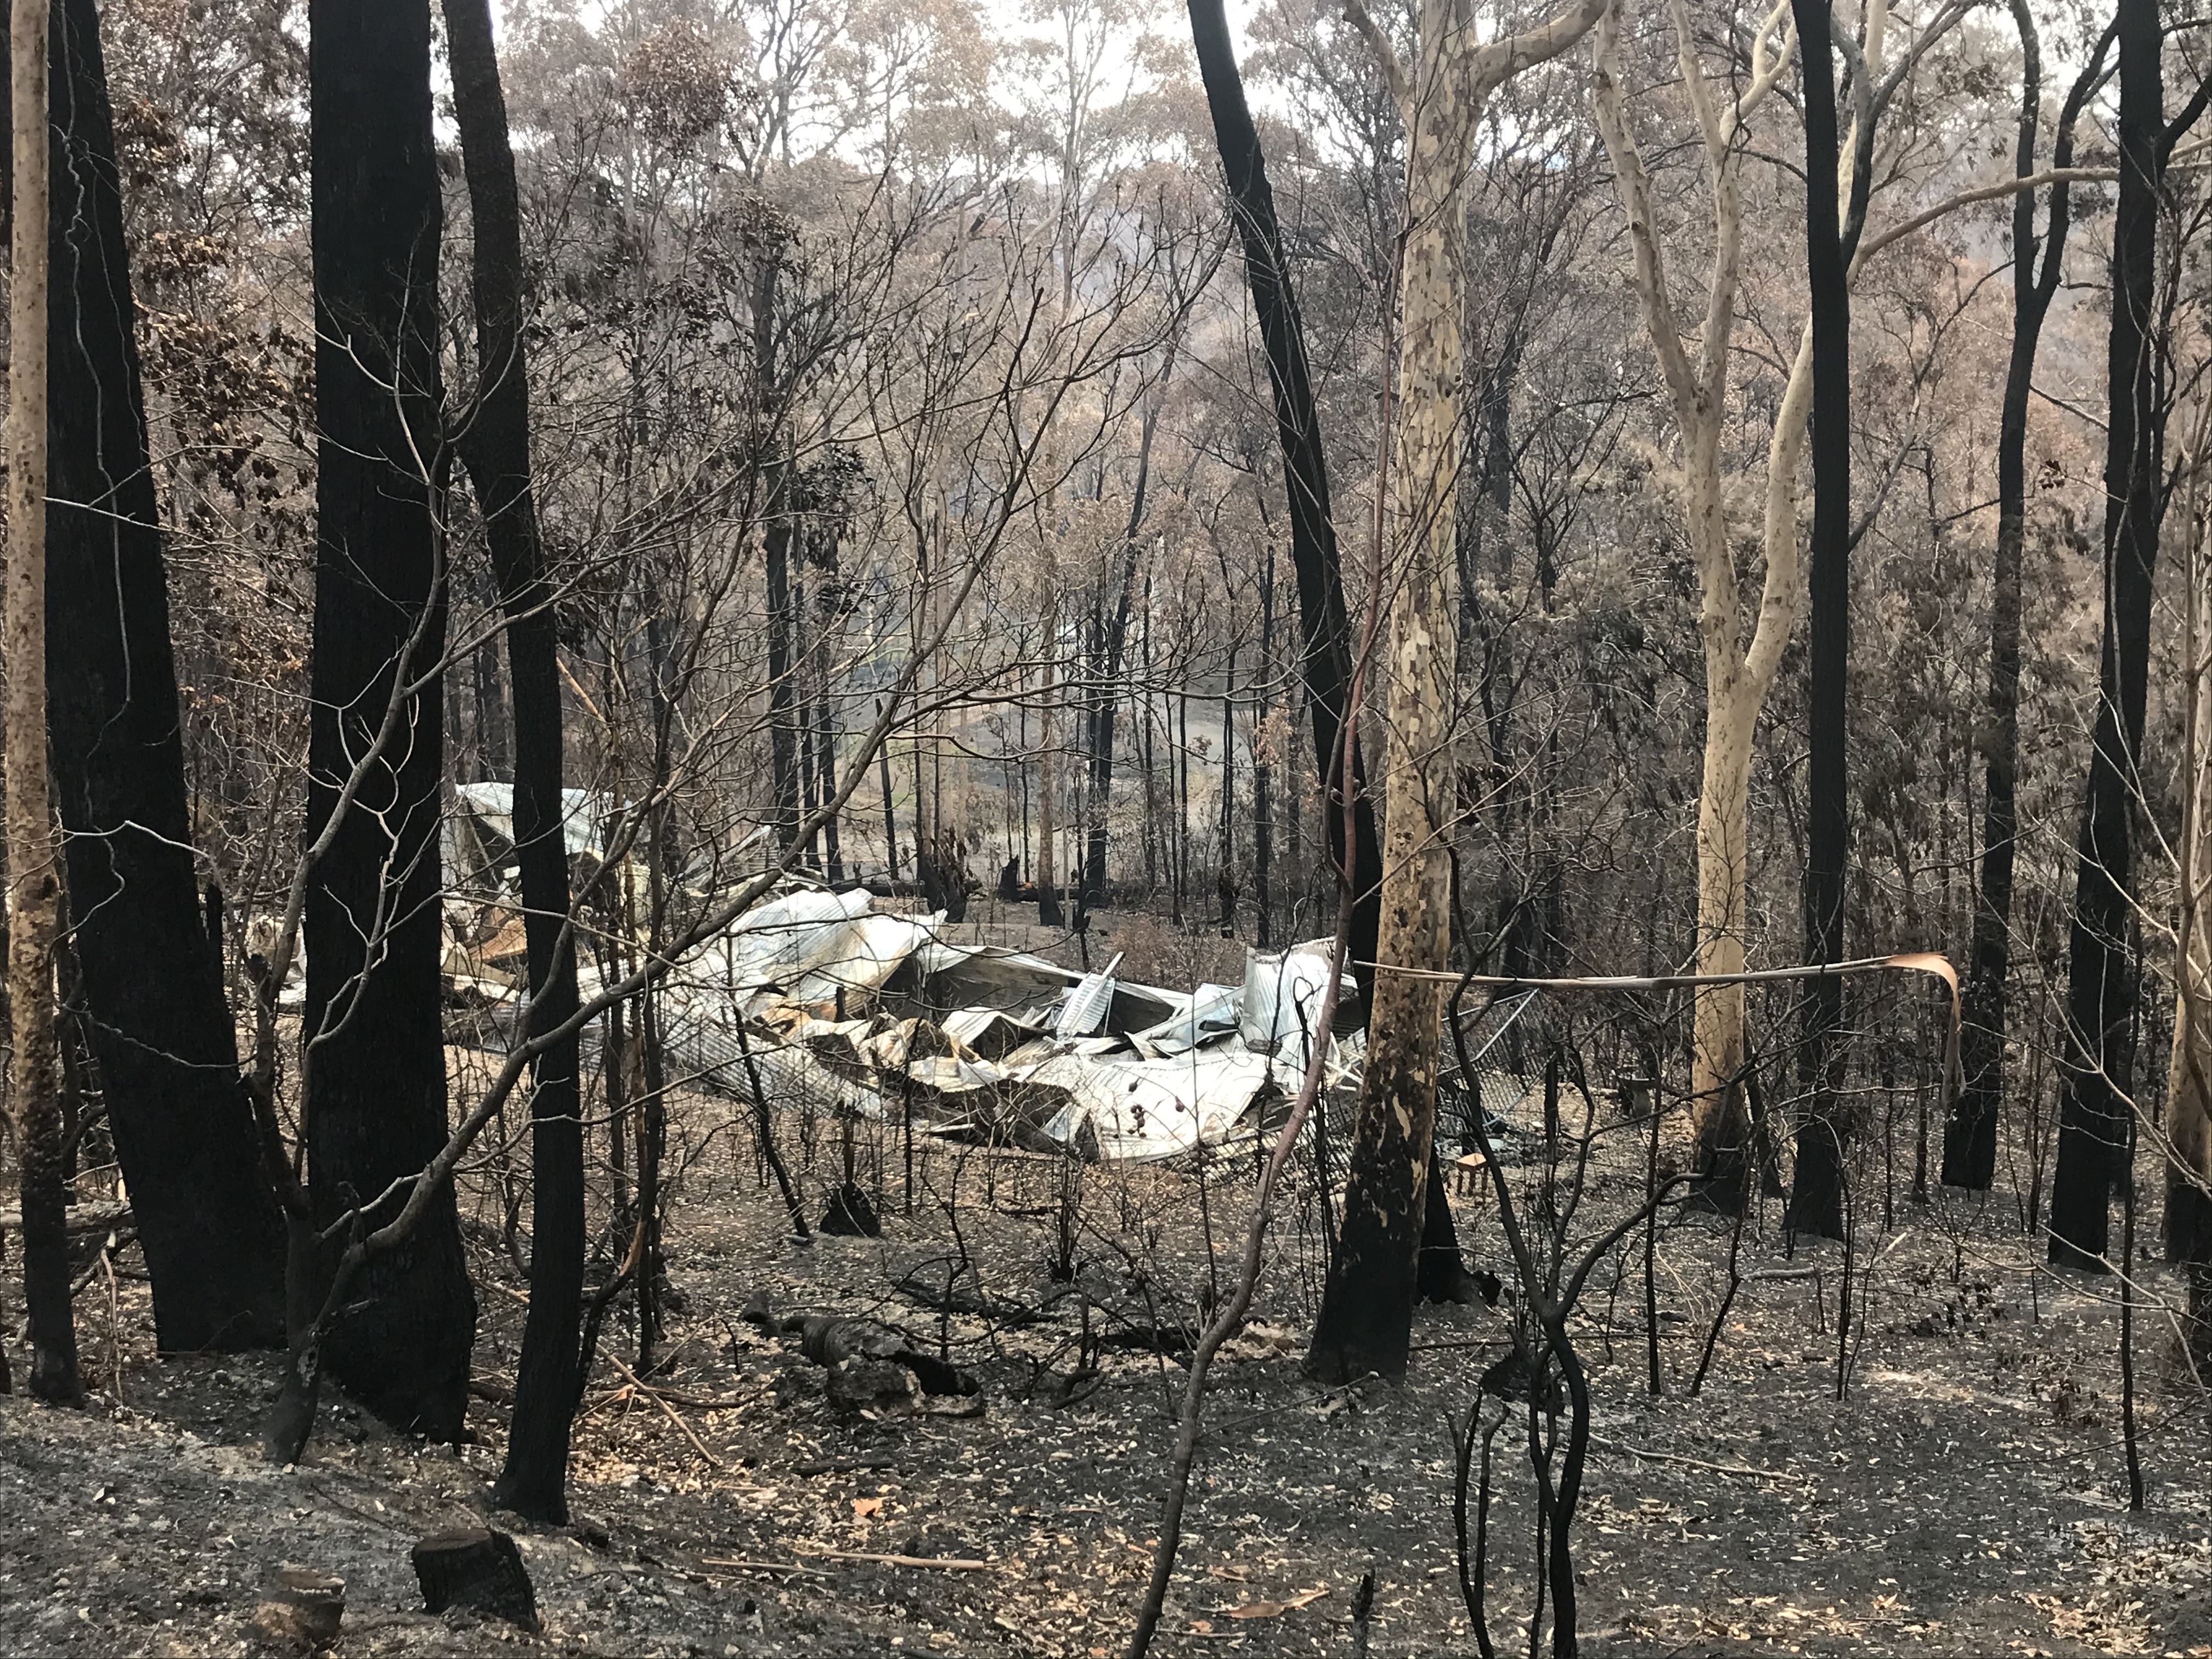 Photo showing aftermath of 2019 New Years Eve bushfires